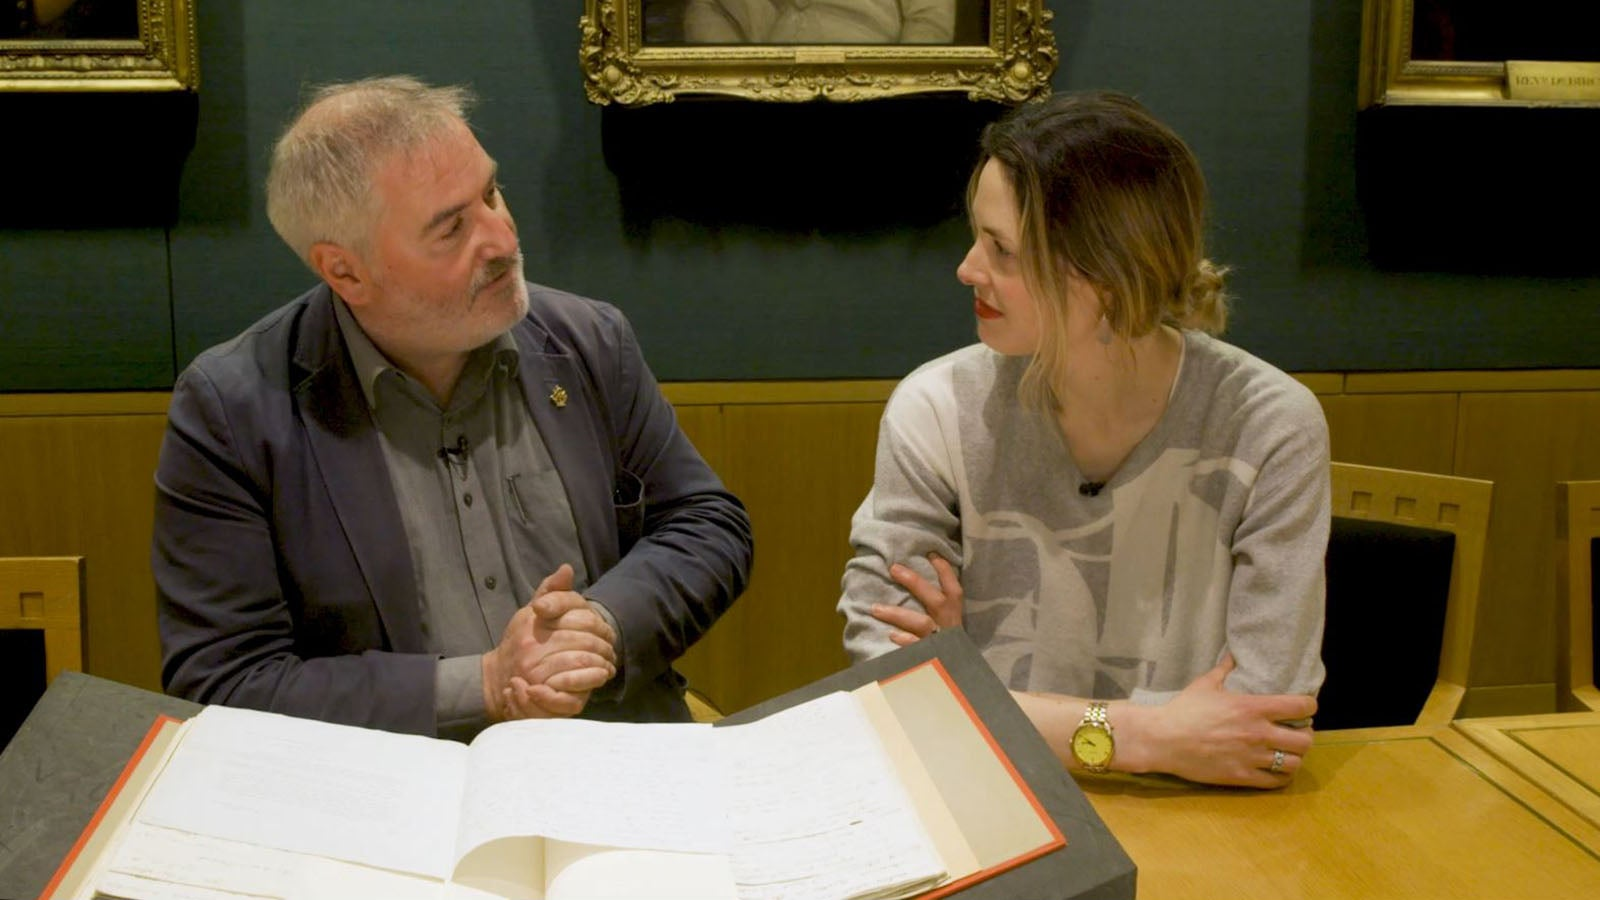 Chris Riddell and Molly Flatt sit at a table in the British Library in discussion